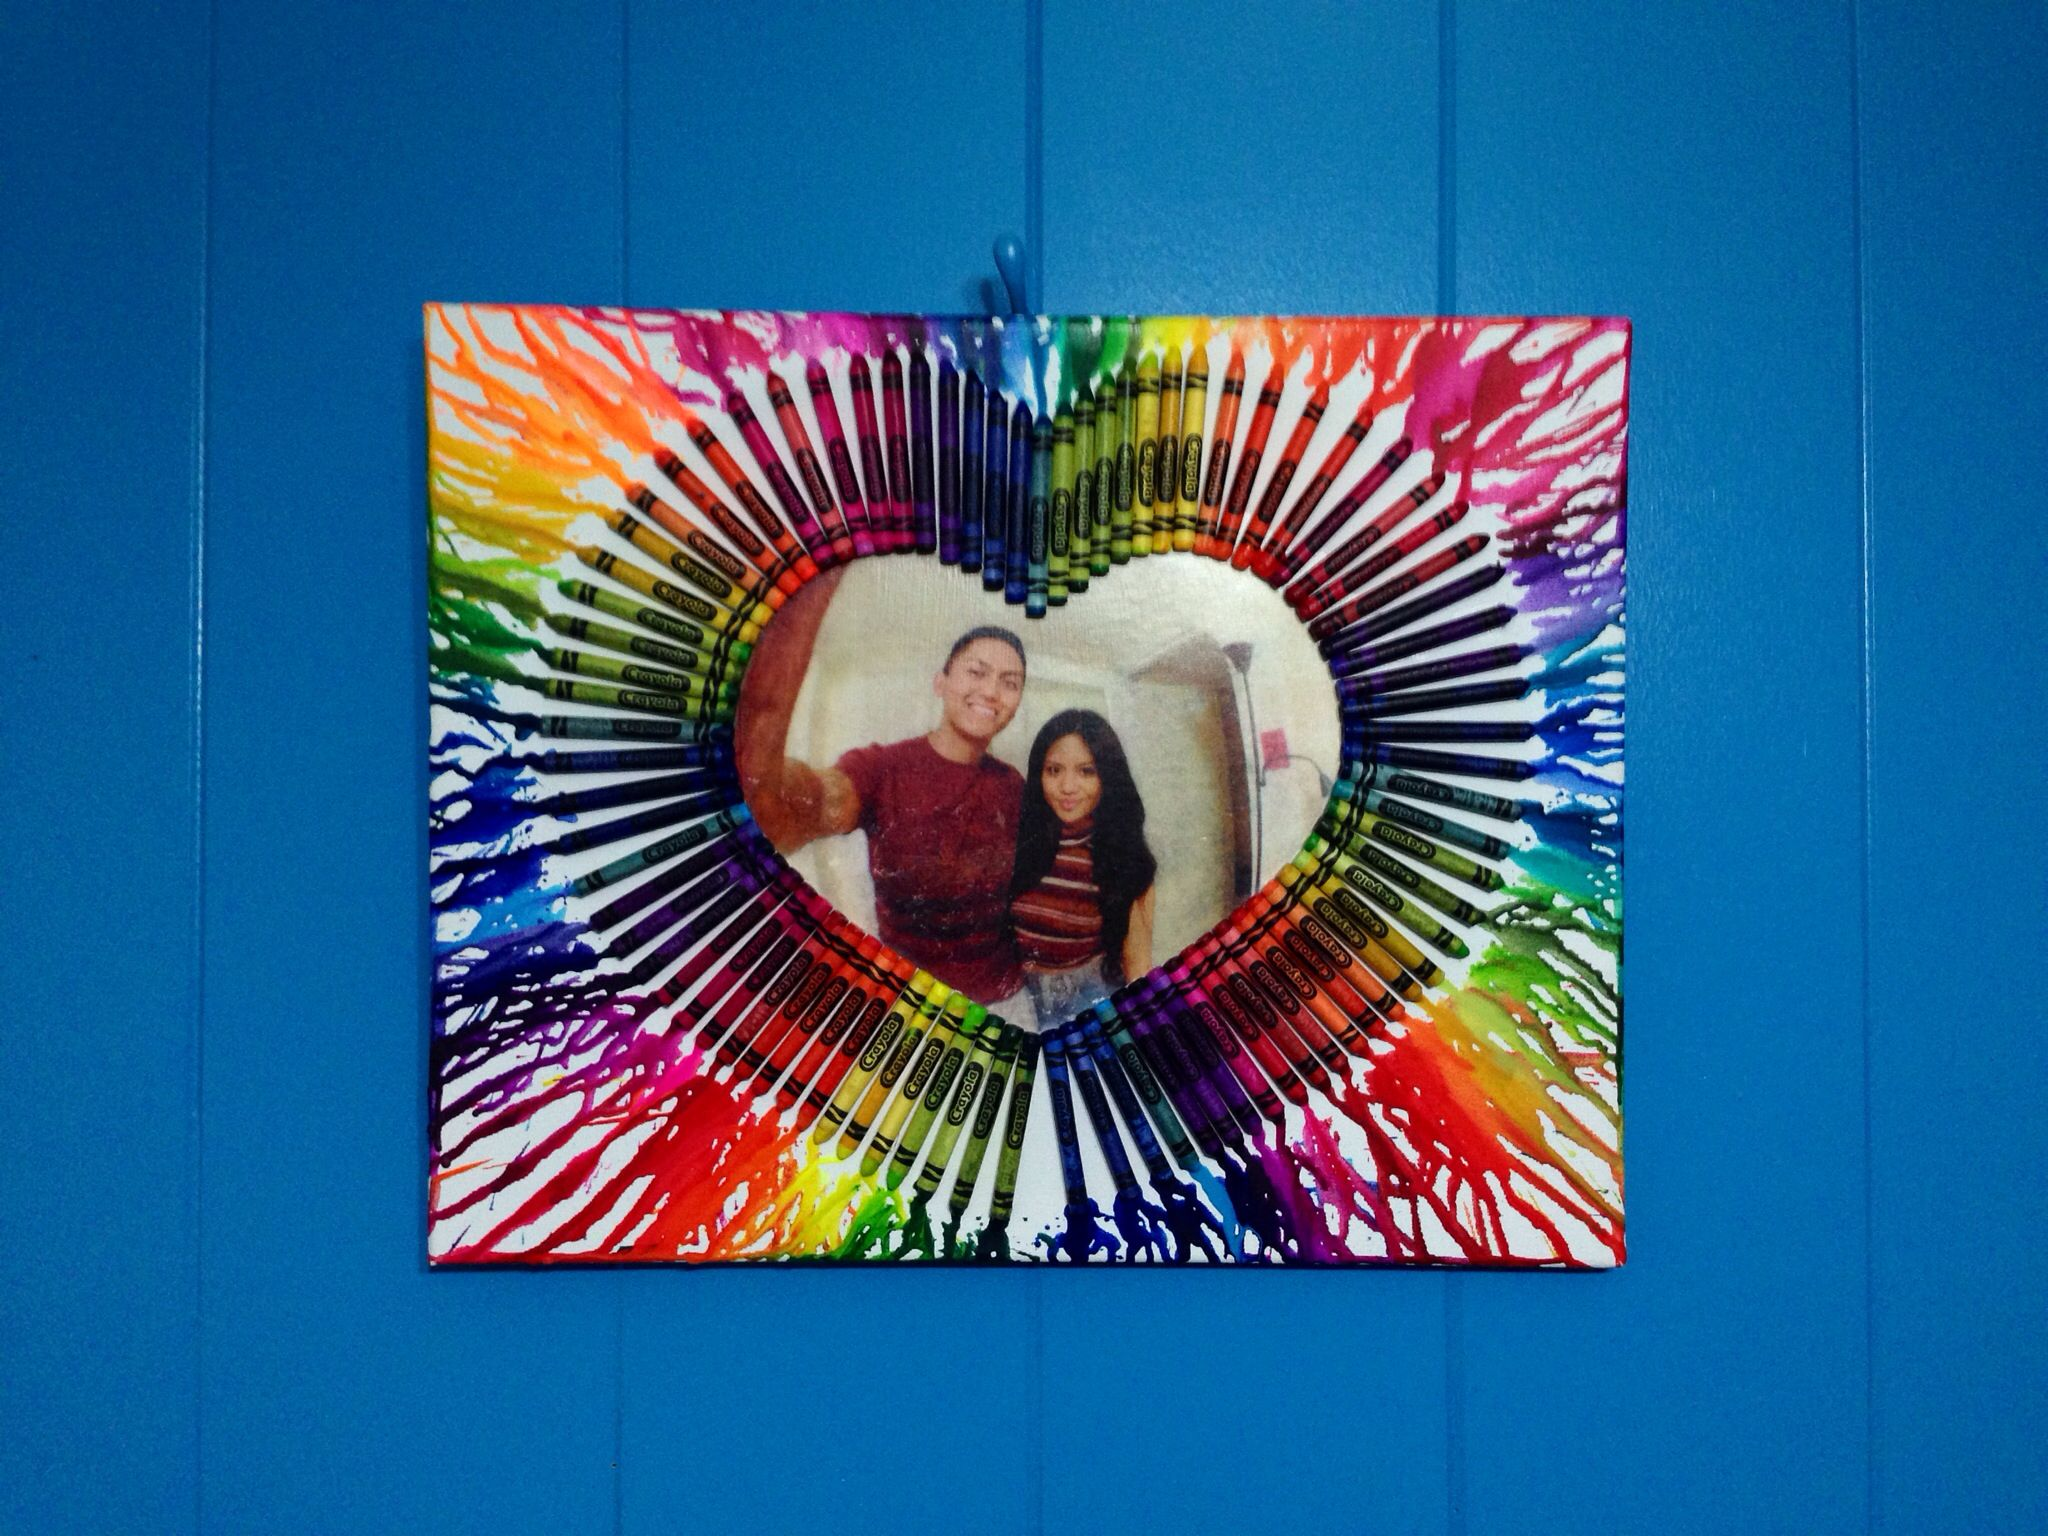 Diy canvas photo transfer melted crayon art diy for How to make a melted crayon art canvas